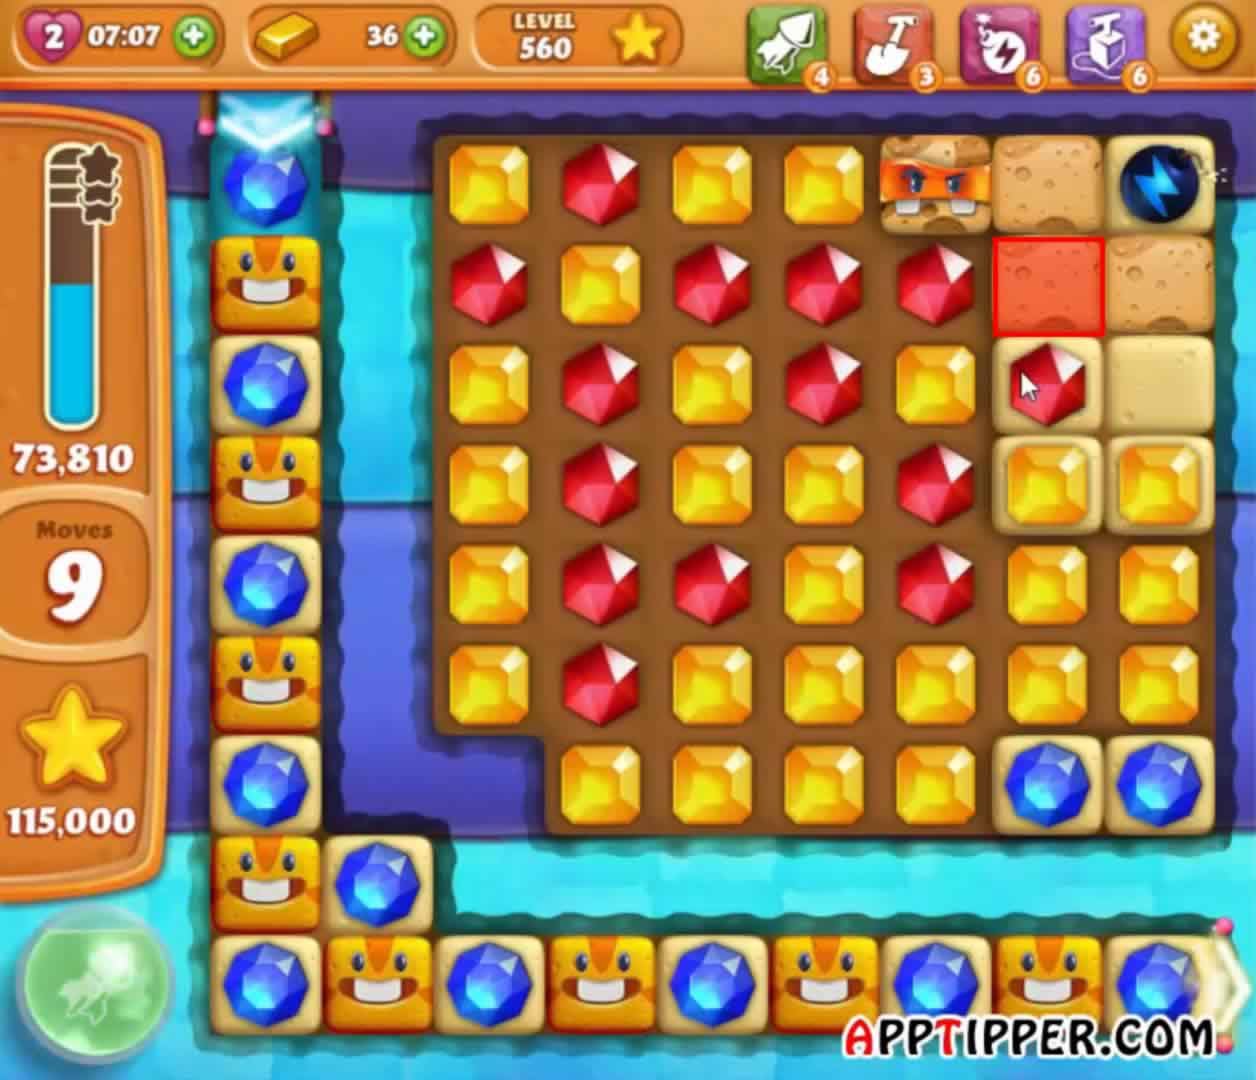 how to pass level 560 on candy crush saga